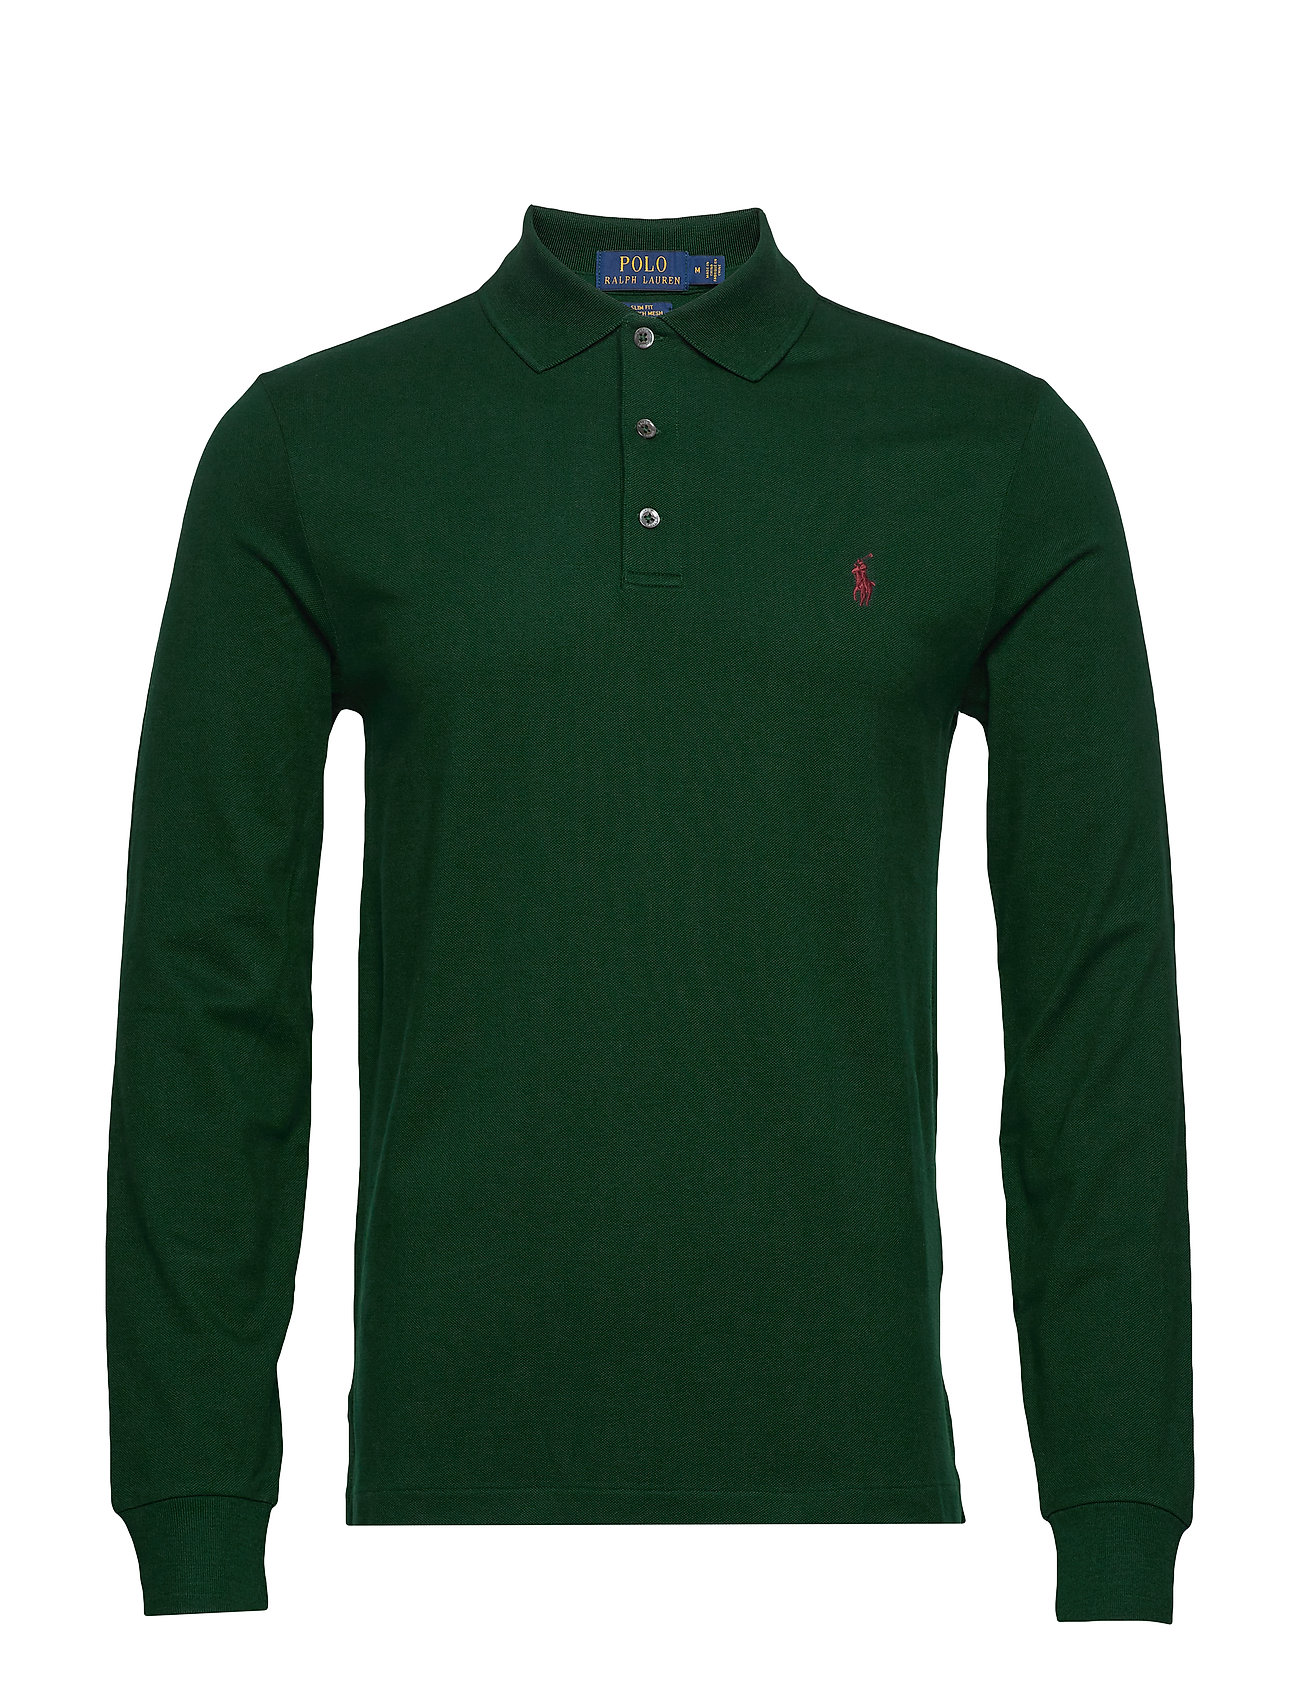 Polo Ralph Lauren LSKCSLMM4-LONG SLEEVE-KNIT - COLLEGE GREEN